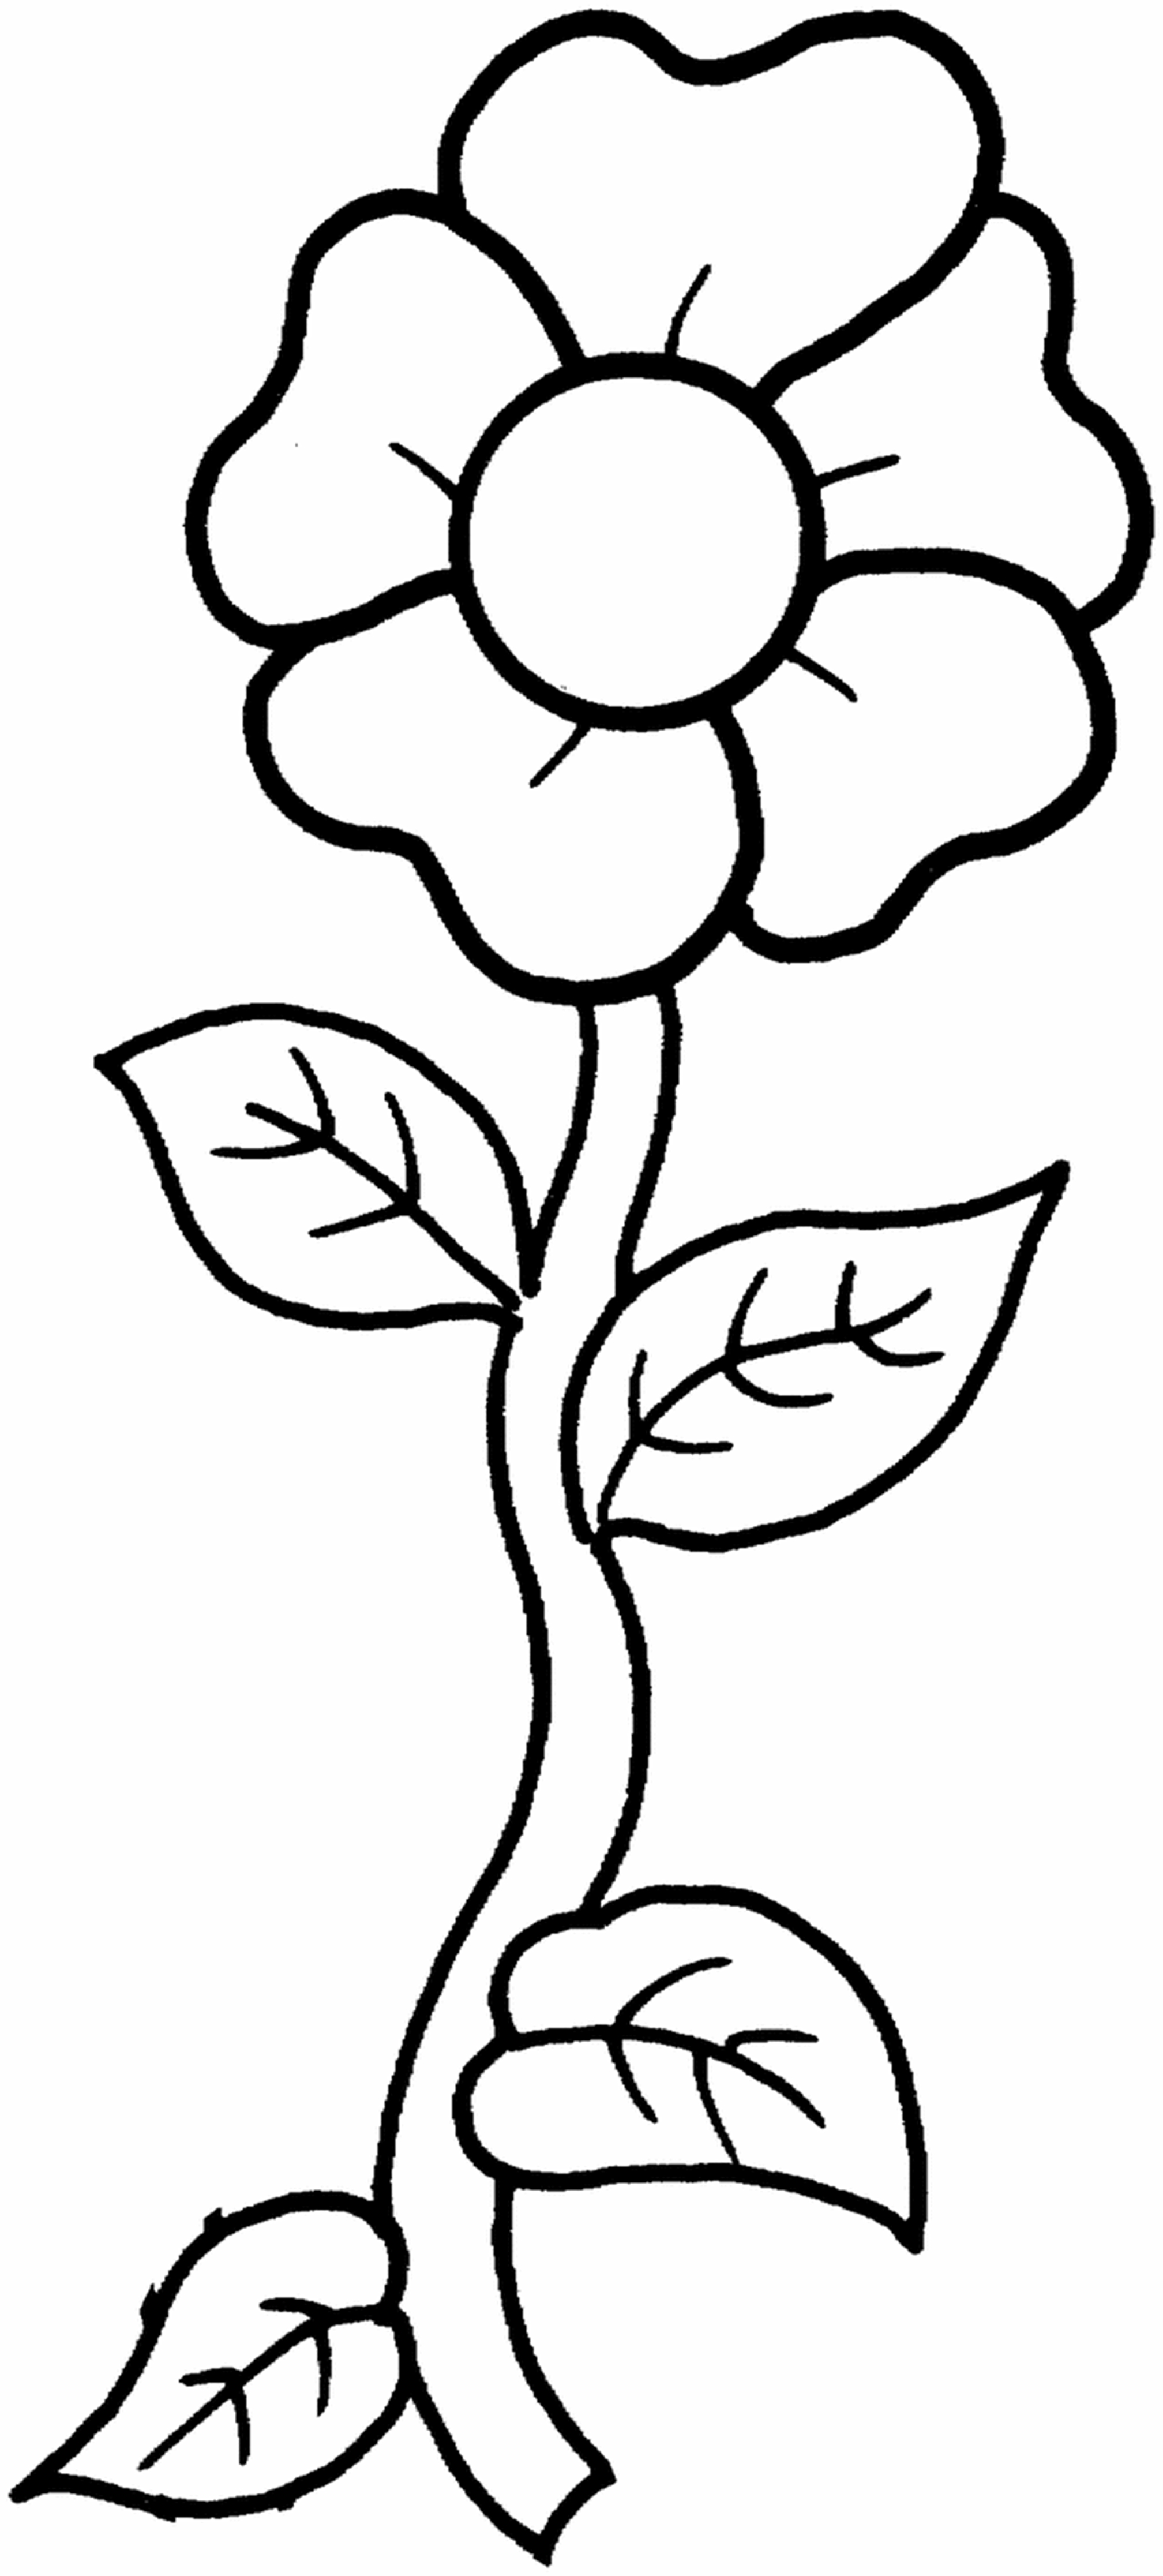 free coloring pages of flowers 200 free halloween coloring pages for kids the suburban pages coloring of flowers free